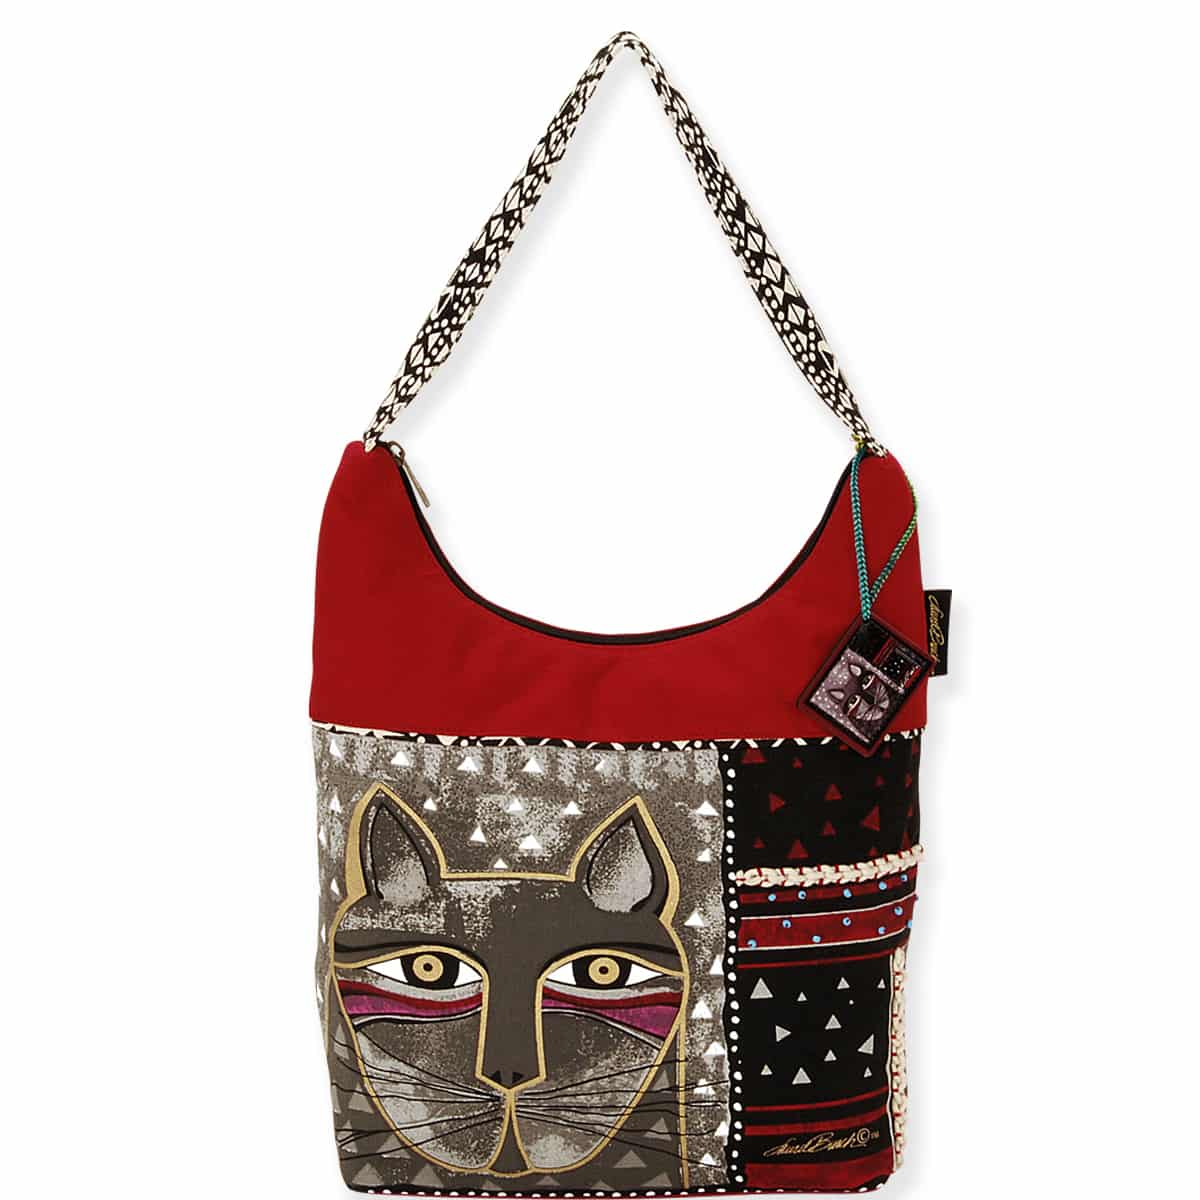 Whiskered Cat Medium Scoop Tote by Laurel Burch